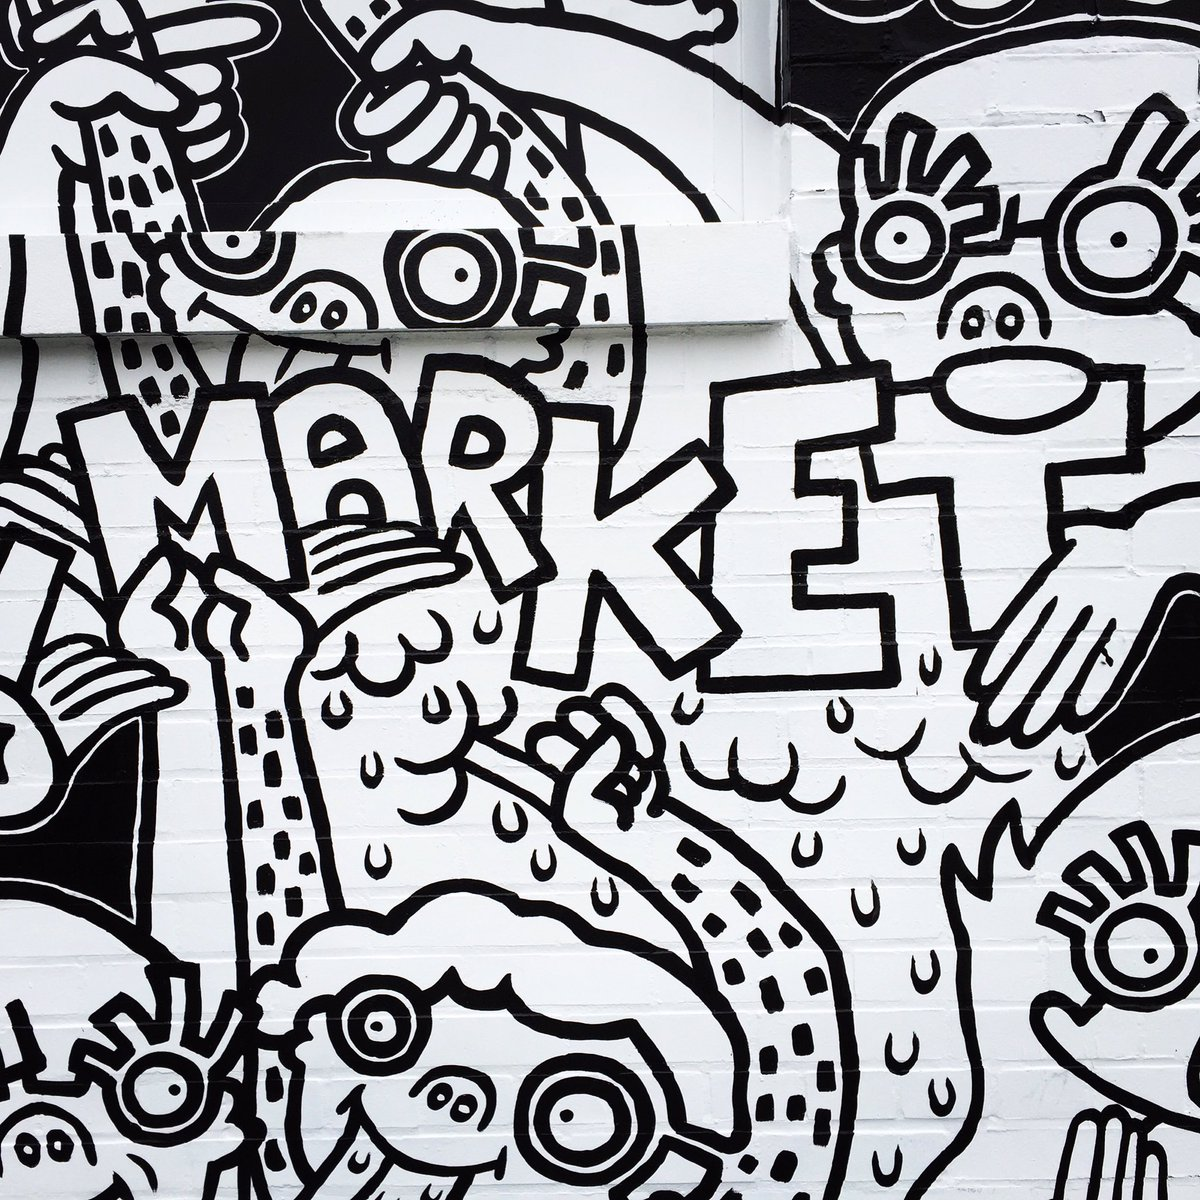 TOMORROW! Hit the #LakeFX Marketplace on the third floor @ChiCulturCenter from 10-4 + shop 60 fab makers! Yes! https://t.co/Gm1D09jyKA